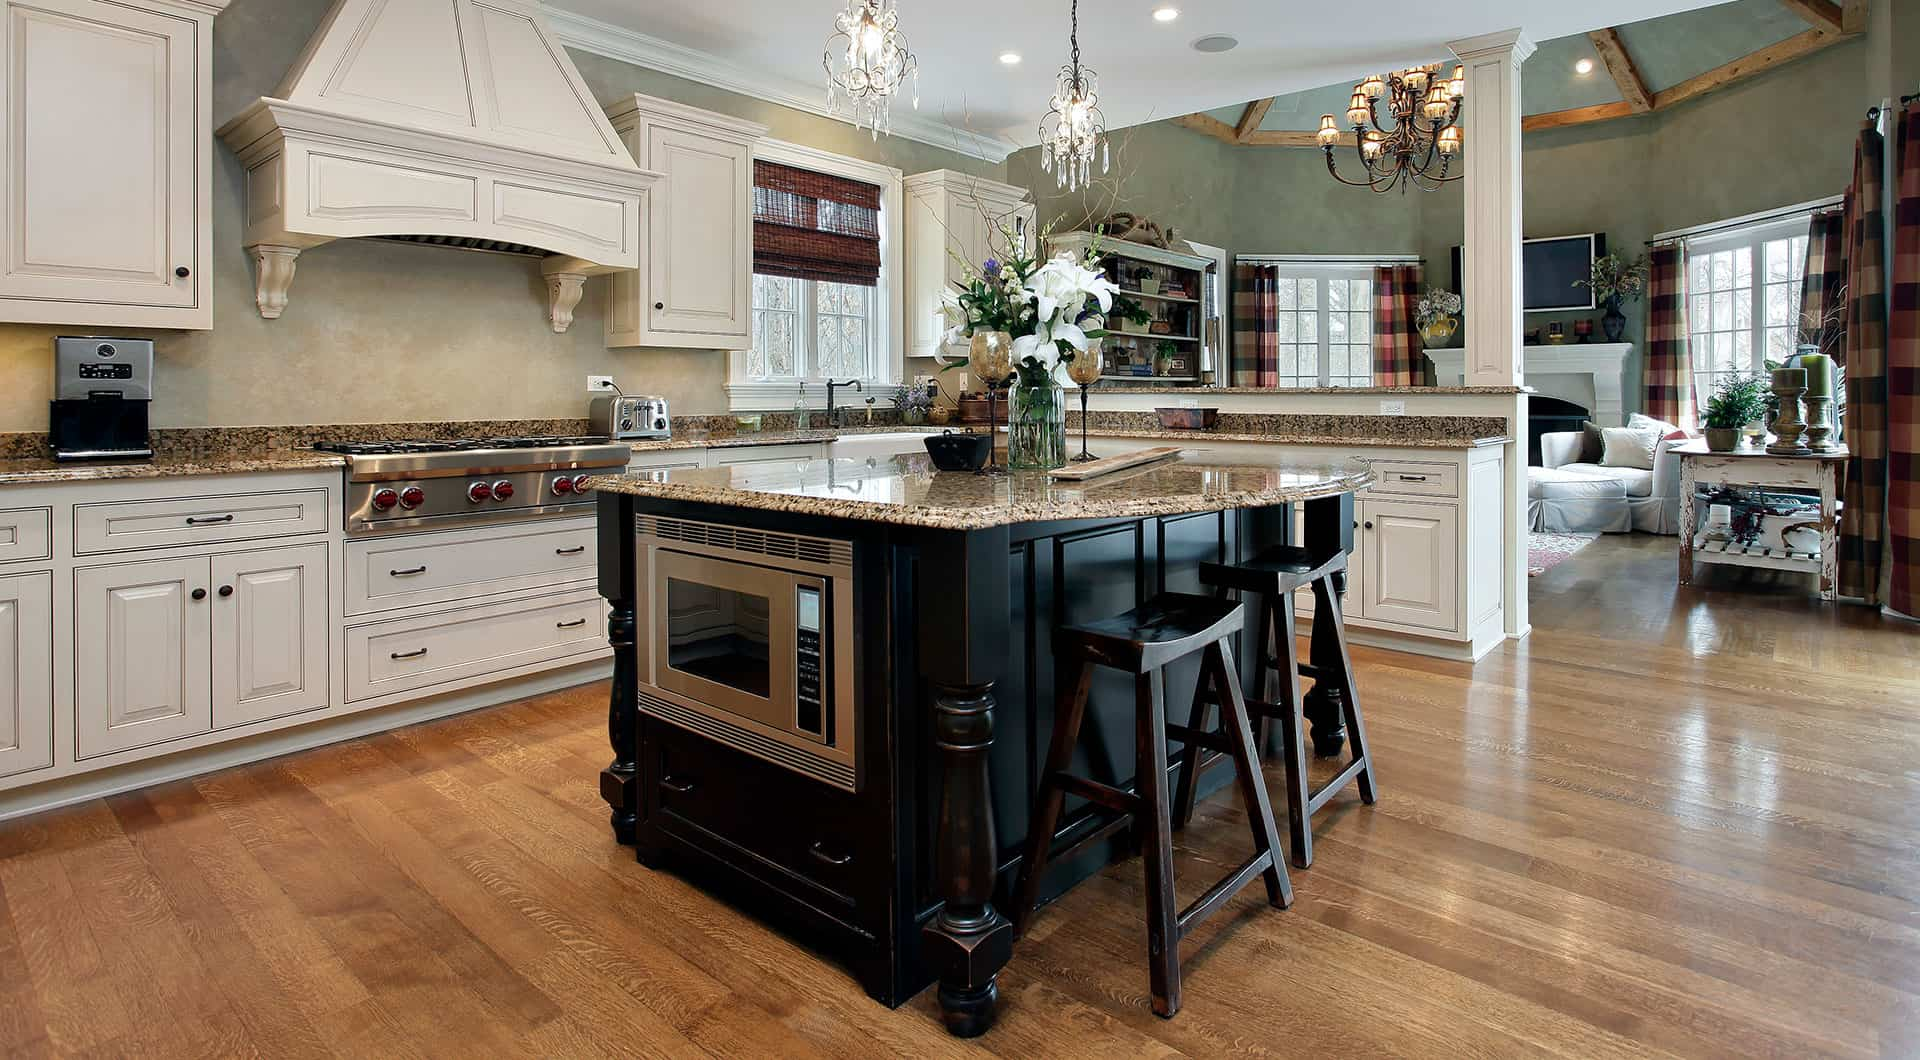 Kitchen Countertop Replacement Expenses To Consider - St ...